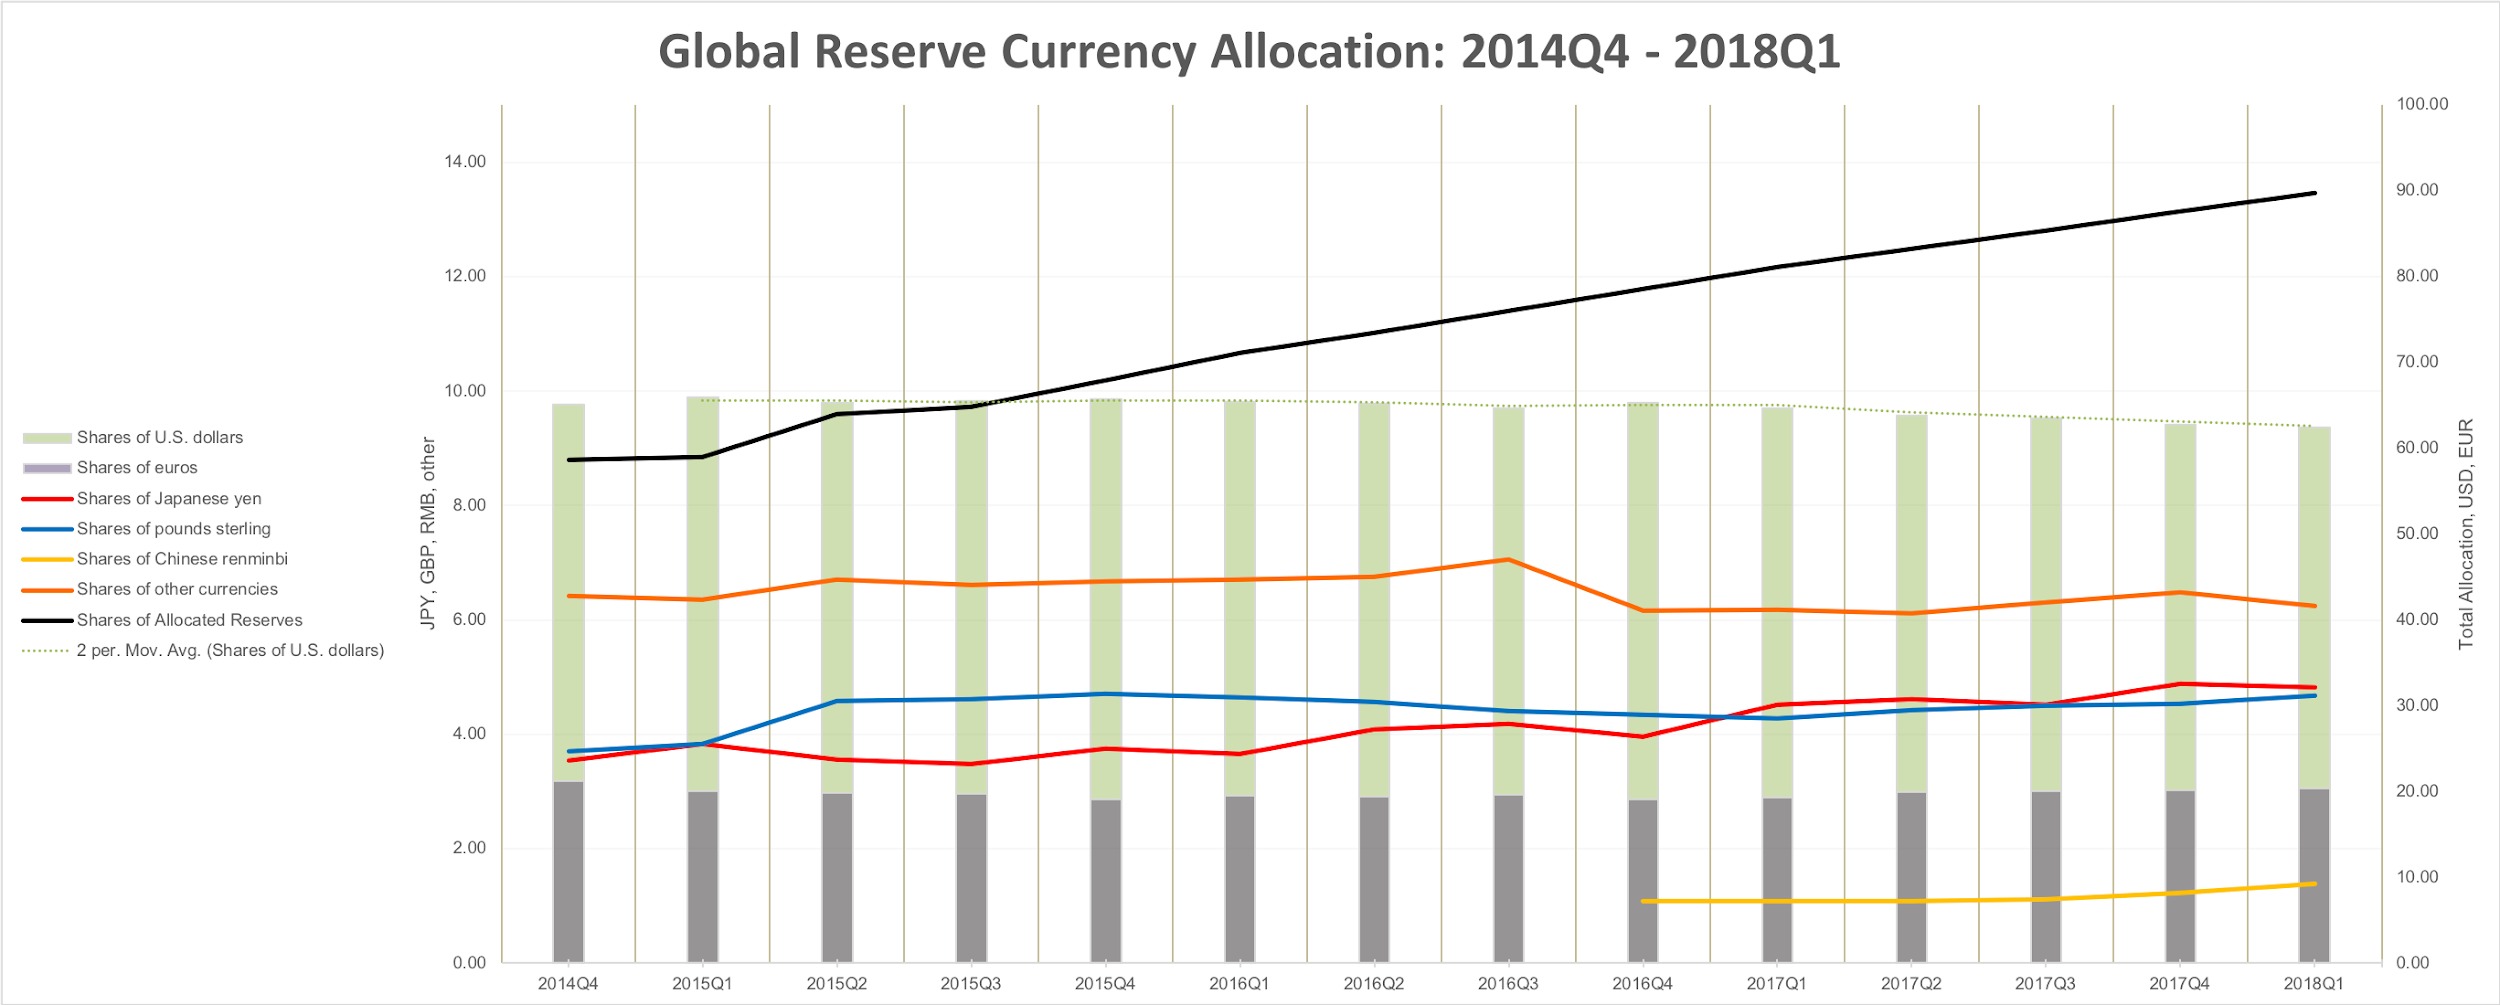 Global Reserve Currency Allocation (Author's Work using data from  Currency Composition of Official Foreign Exchange Reserves (COFER), International Financial Statistics  )